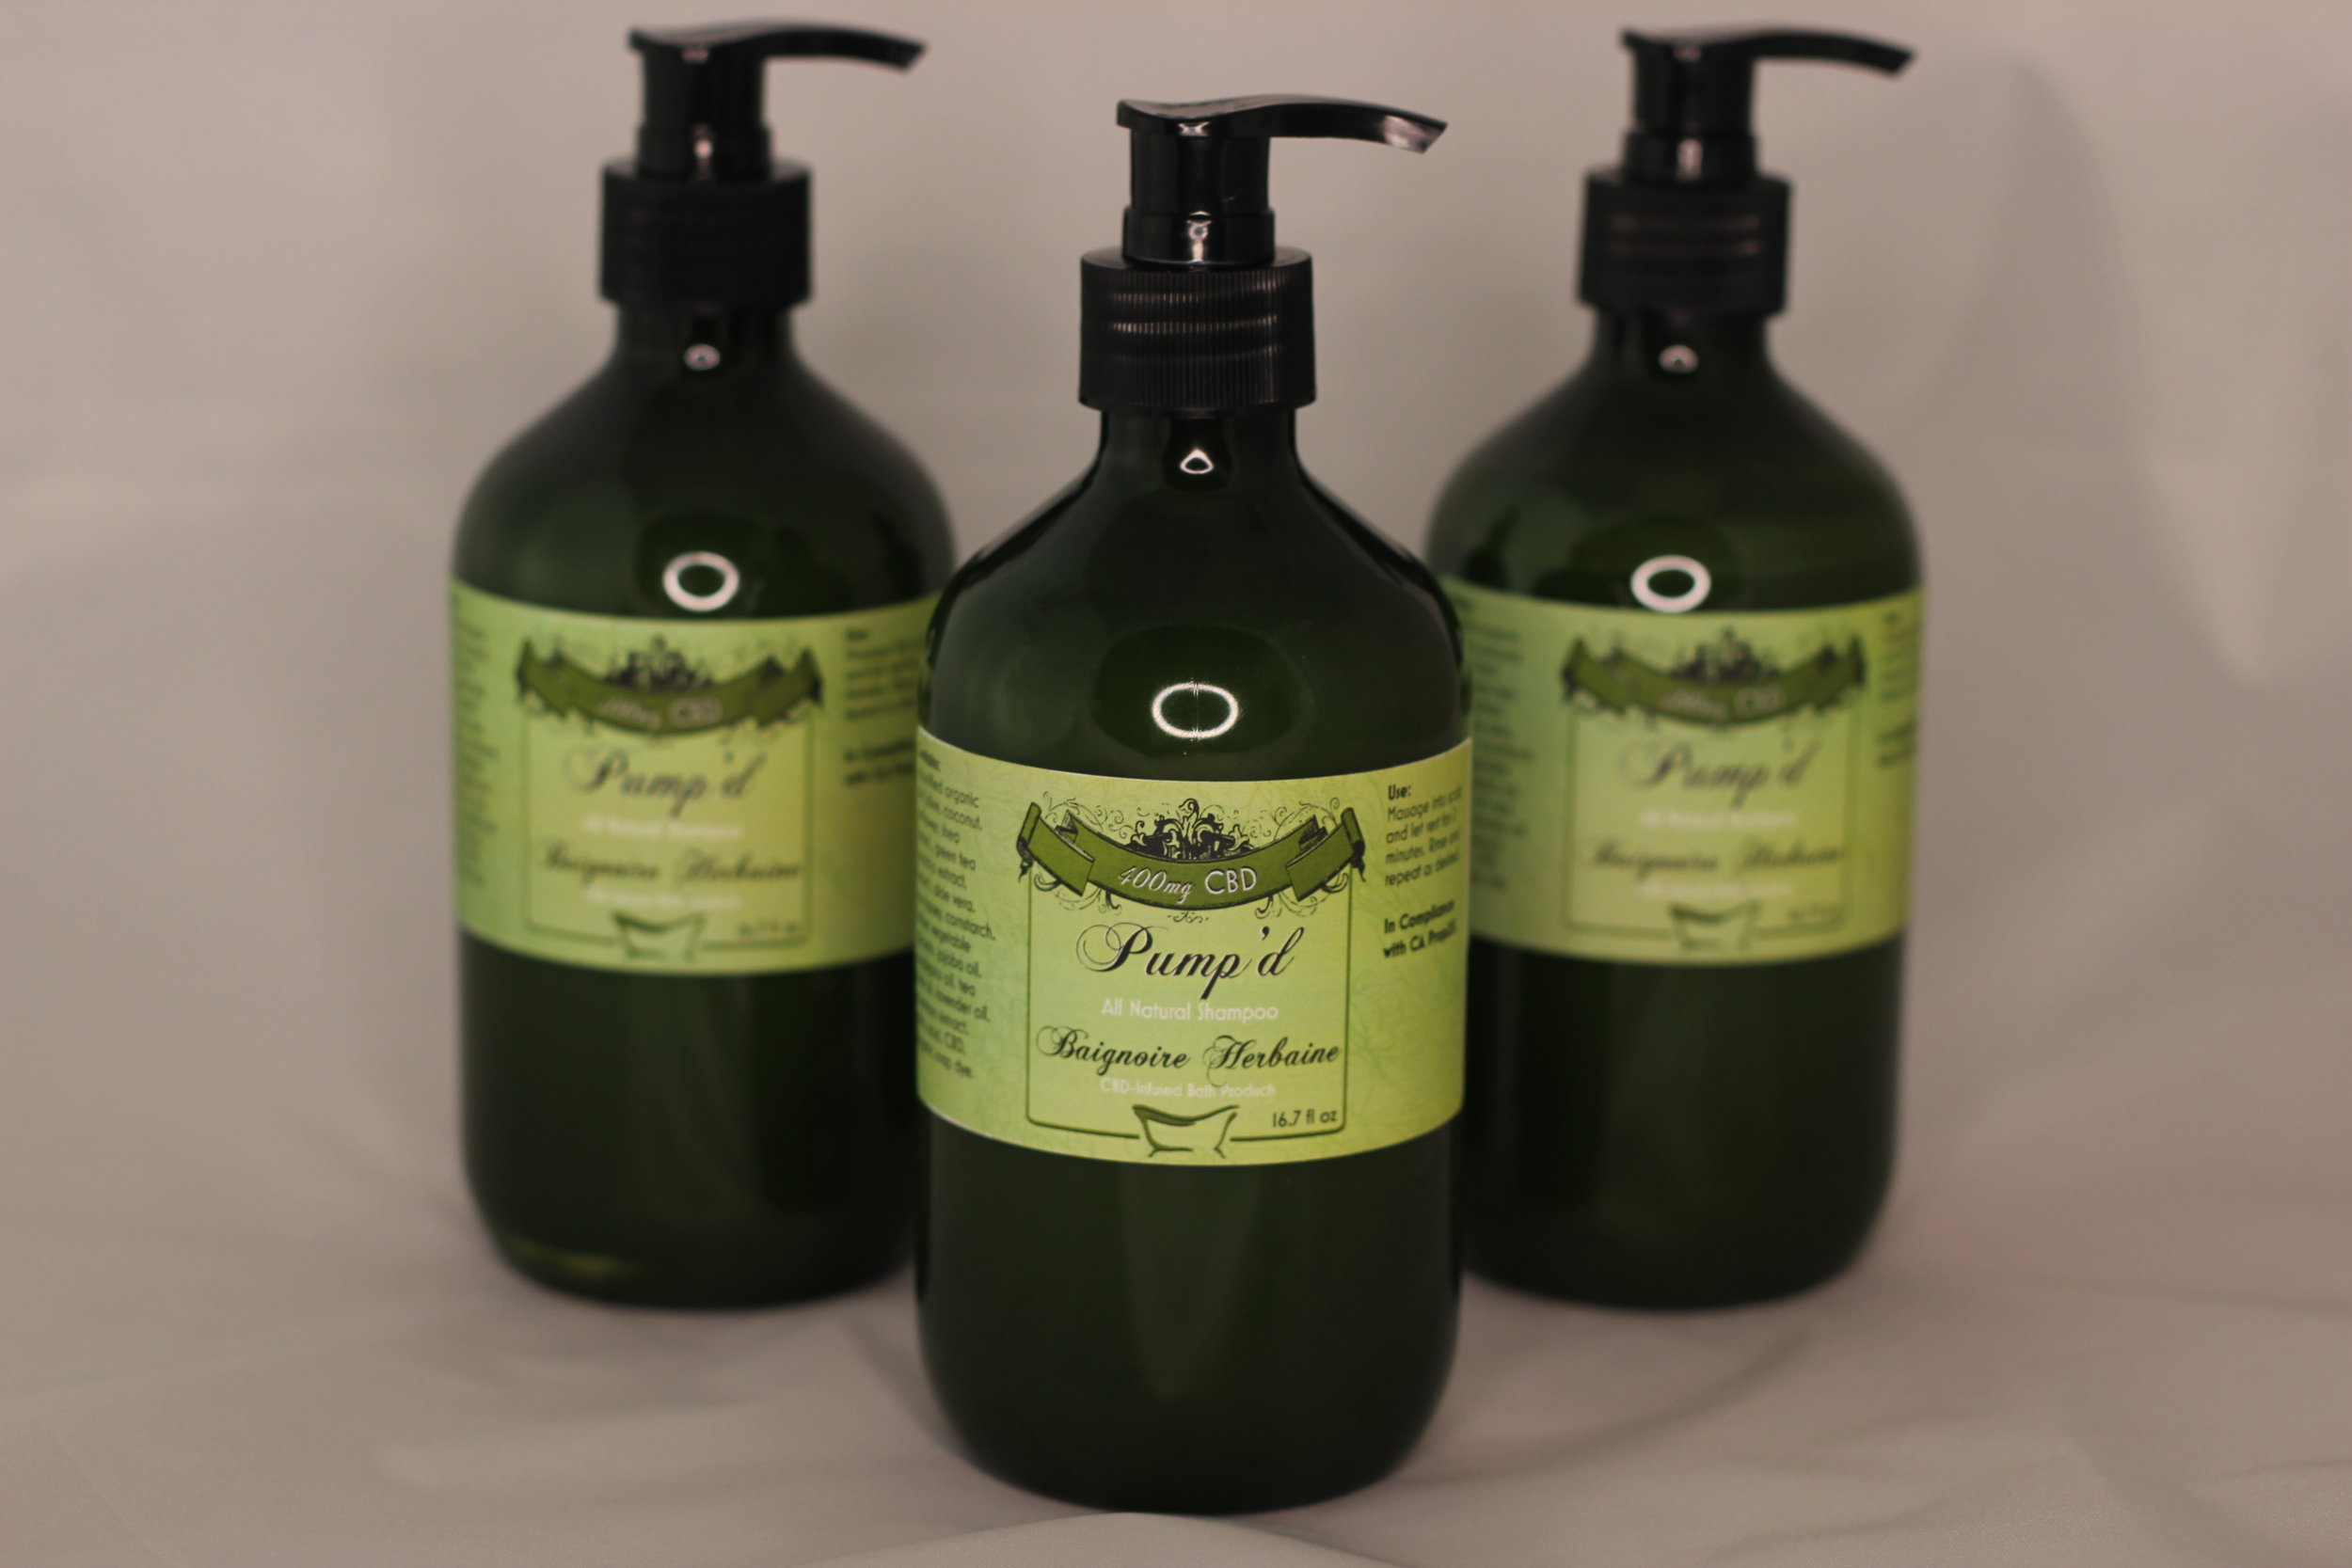 - Baignoire Herbaine - - Shop all New Products